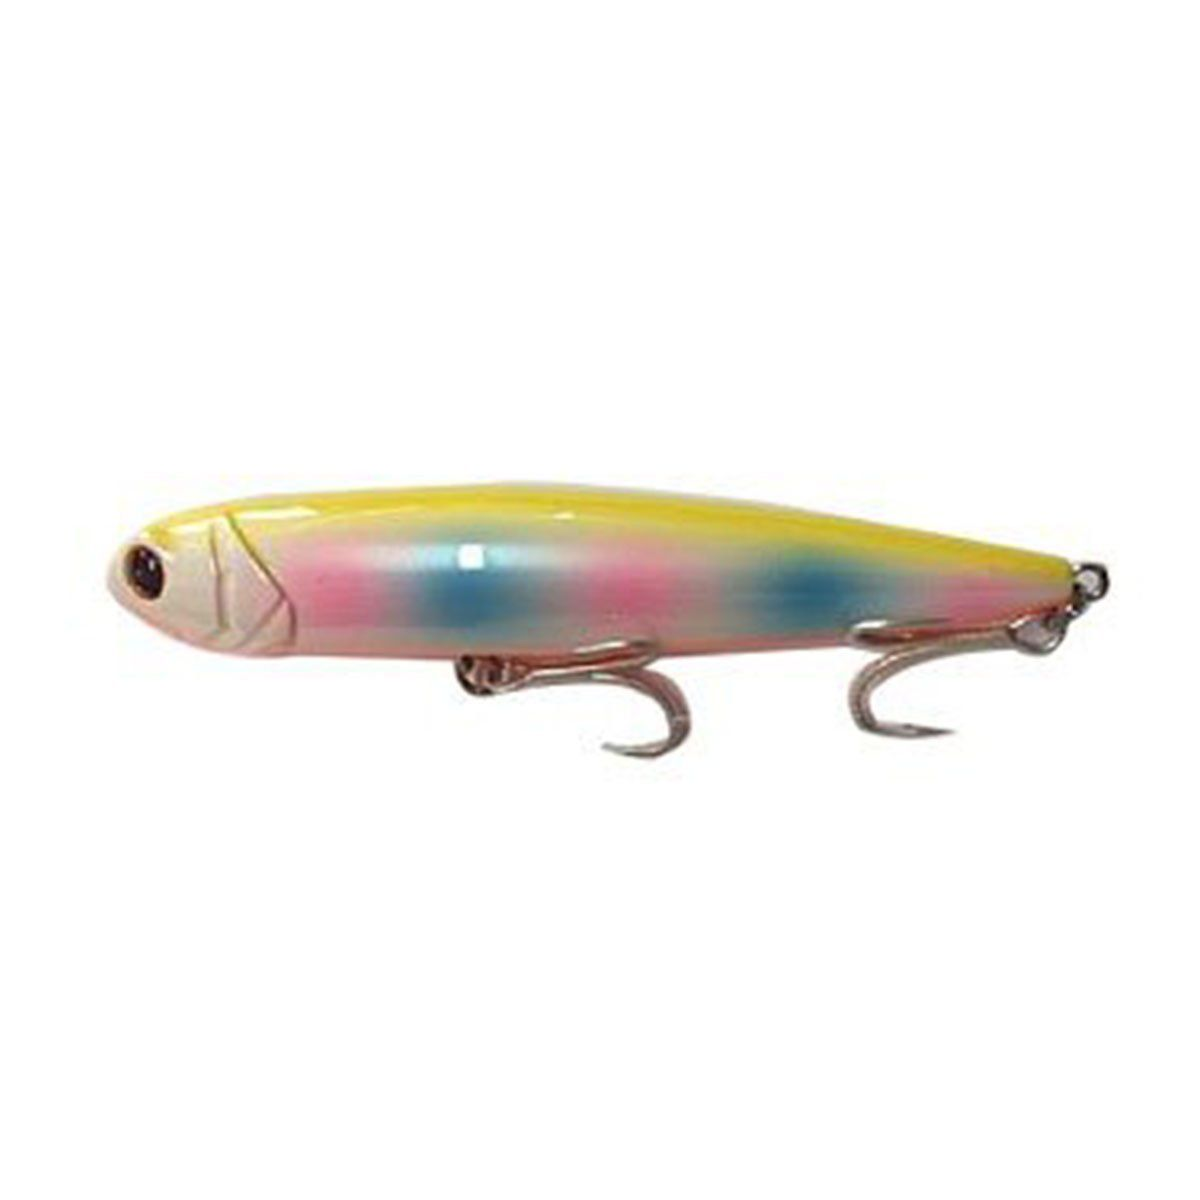 Isca Artificial Nitro Fishing Joker 113 11,3cm 14g